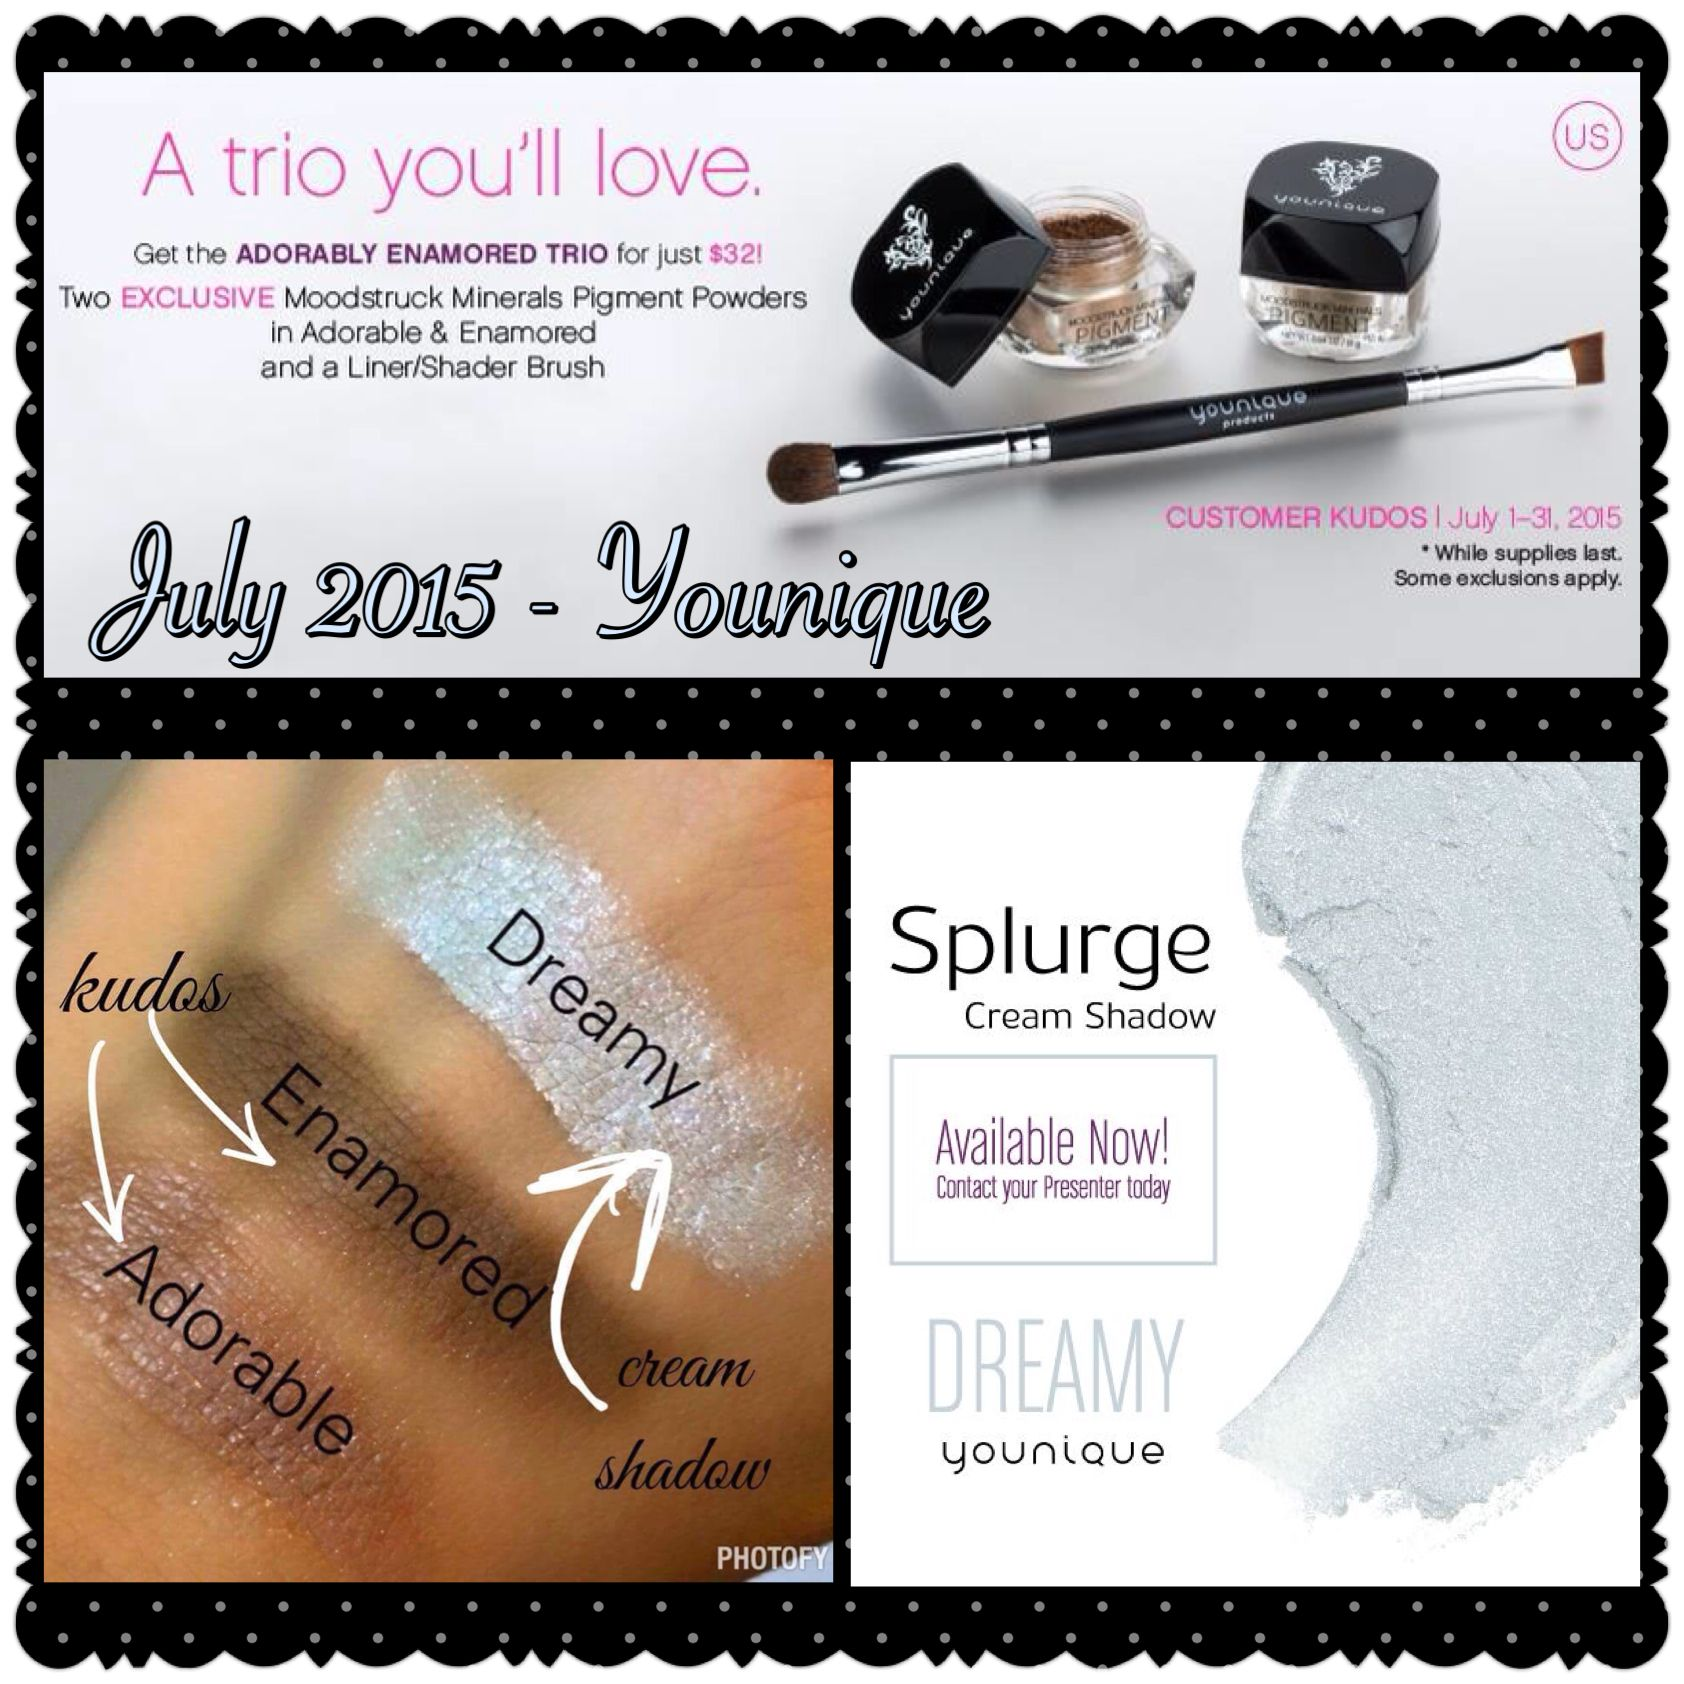 July 2015 Younique Kudos and new Splurge Cream Shadow!!!!!